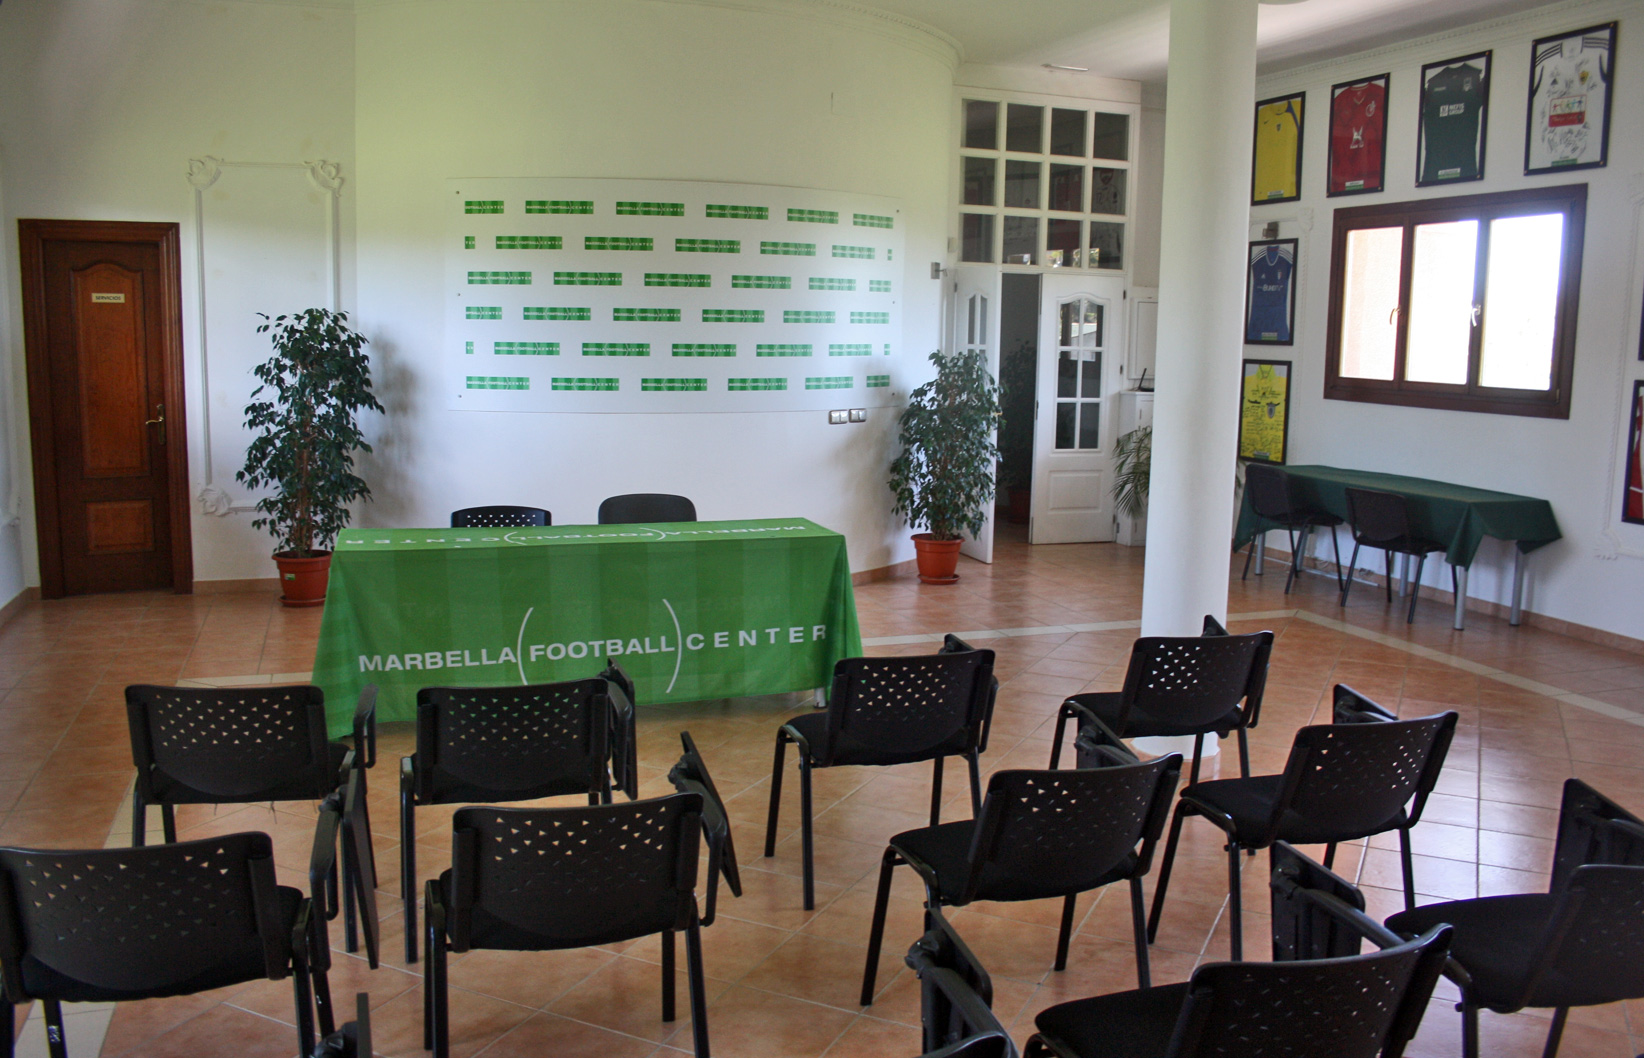 MARBELLA FOOTBALL CENTER PRESS ROOM WITH FREE WIFI